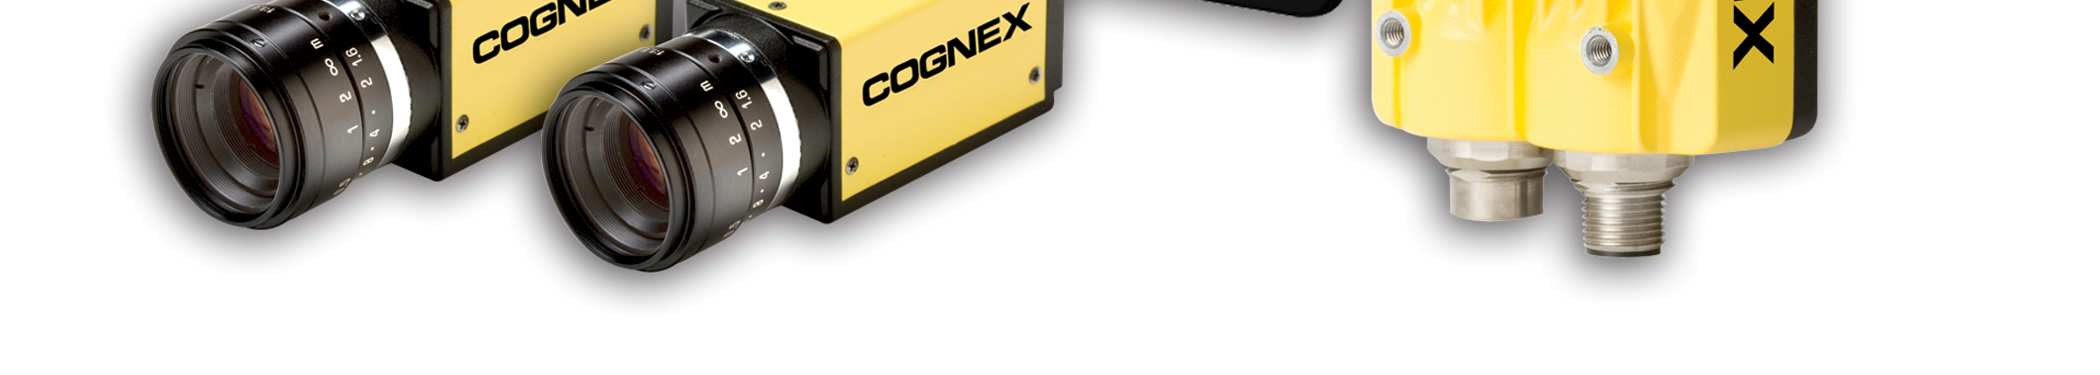 Cognex Insight Spreadsheet Tutorial Intended For Cognex Insight  Simatic S7 300 Plc. Profinet Communication Manual